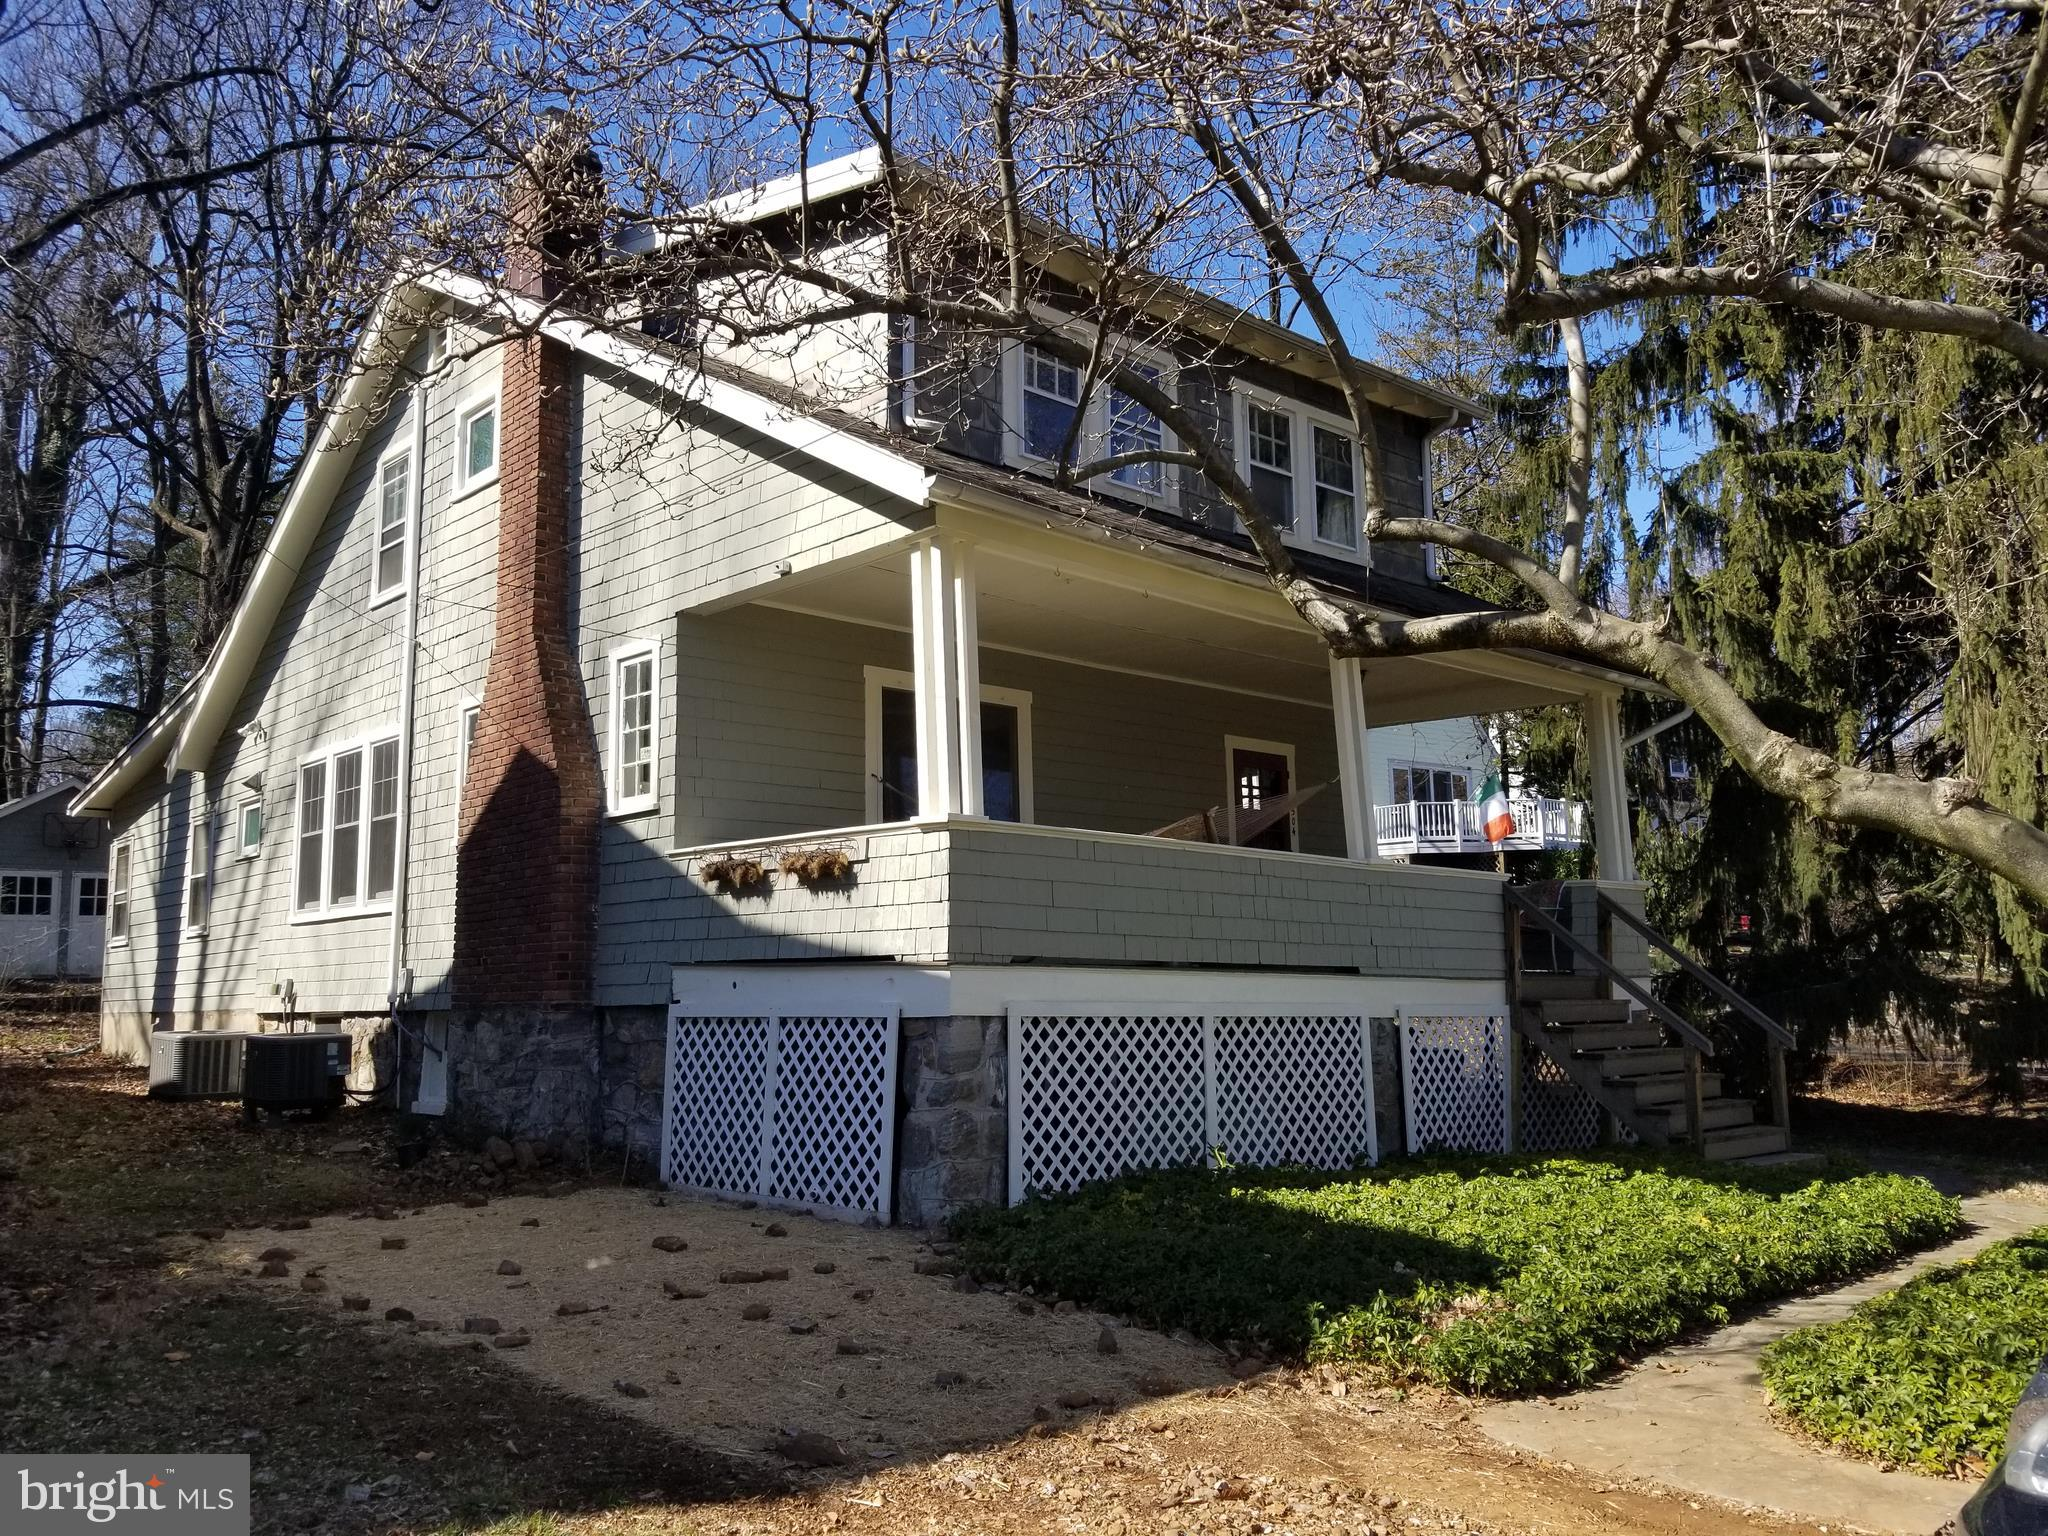 5504 S BEND ROAD, BALTIMORE, MD 21209